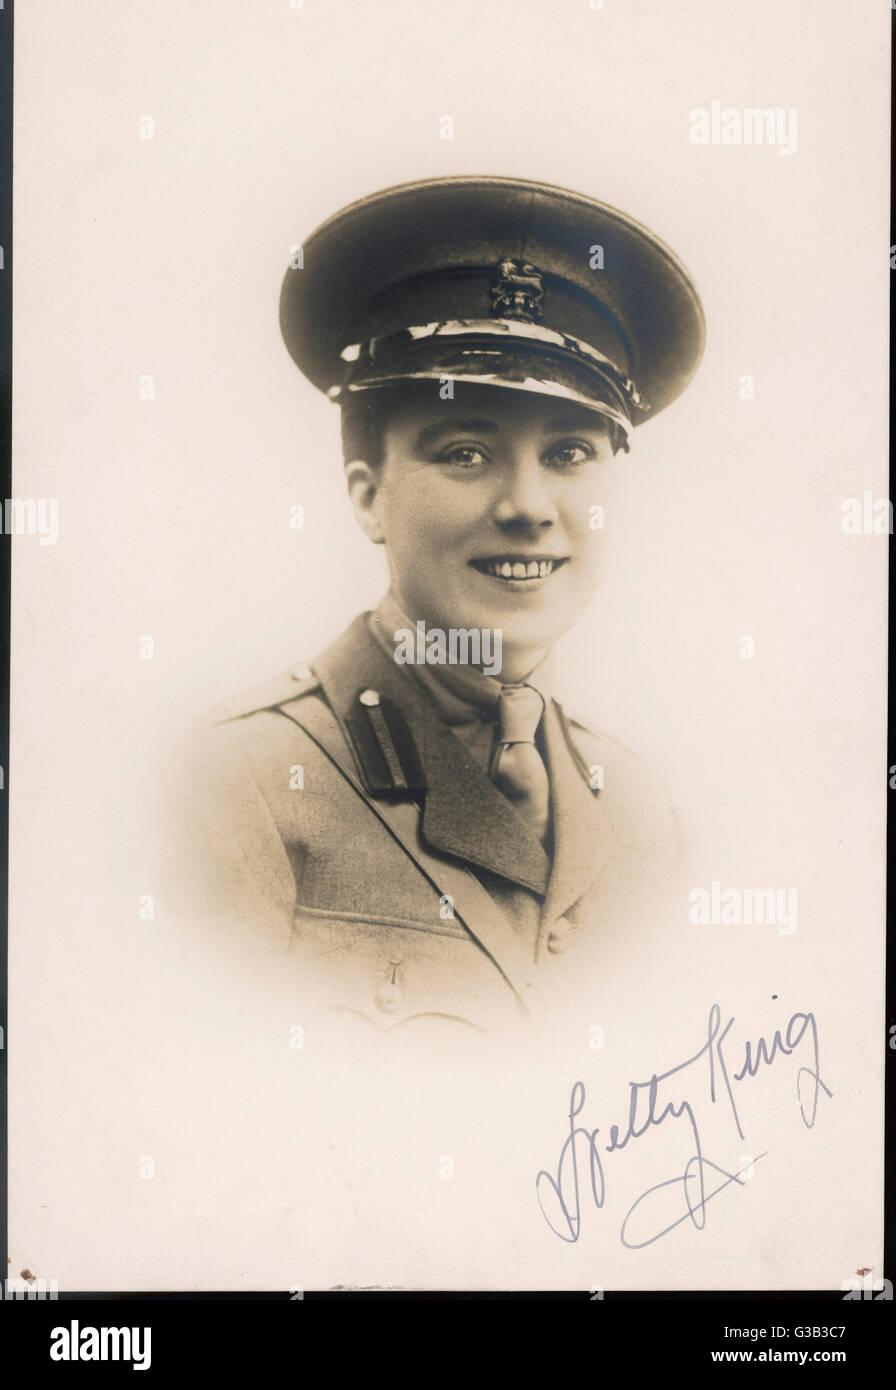 HETTY KING  Variety artiste and male impersonator,  seen here in uniform      Date: early 20th century - Stock Image